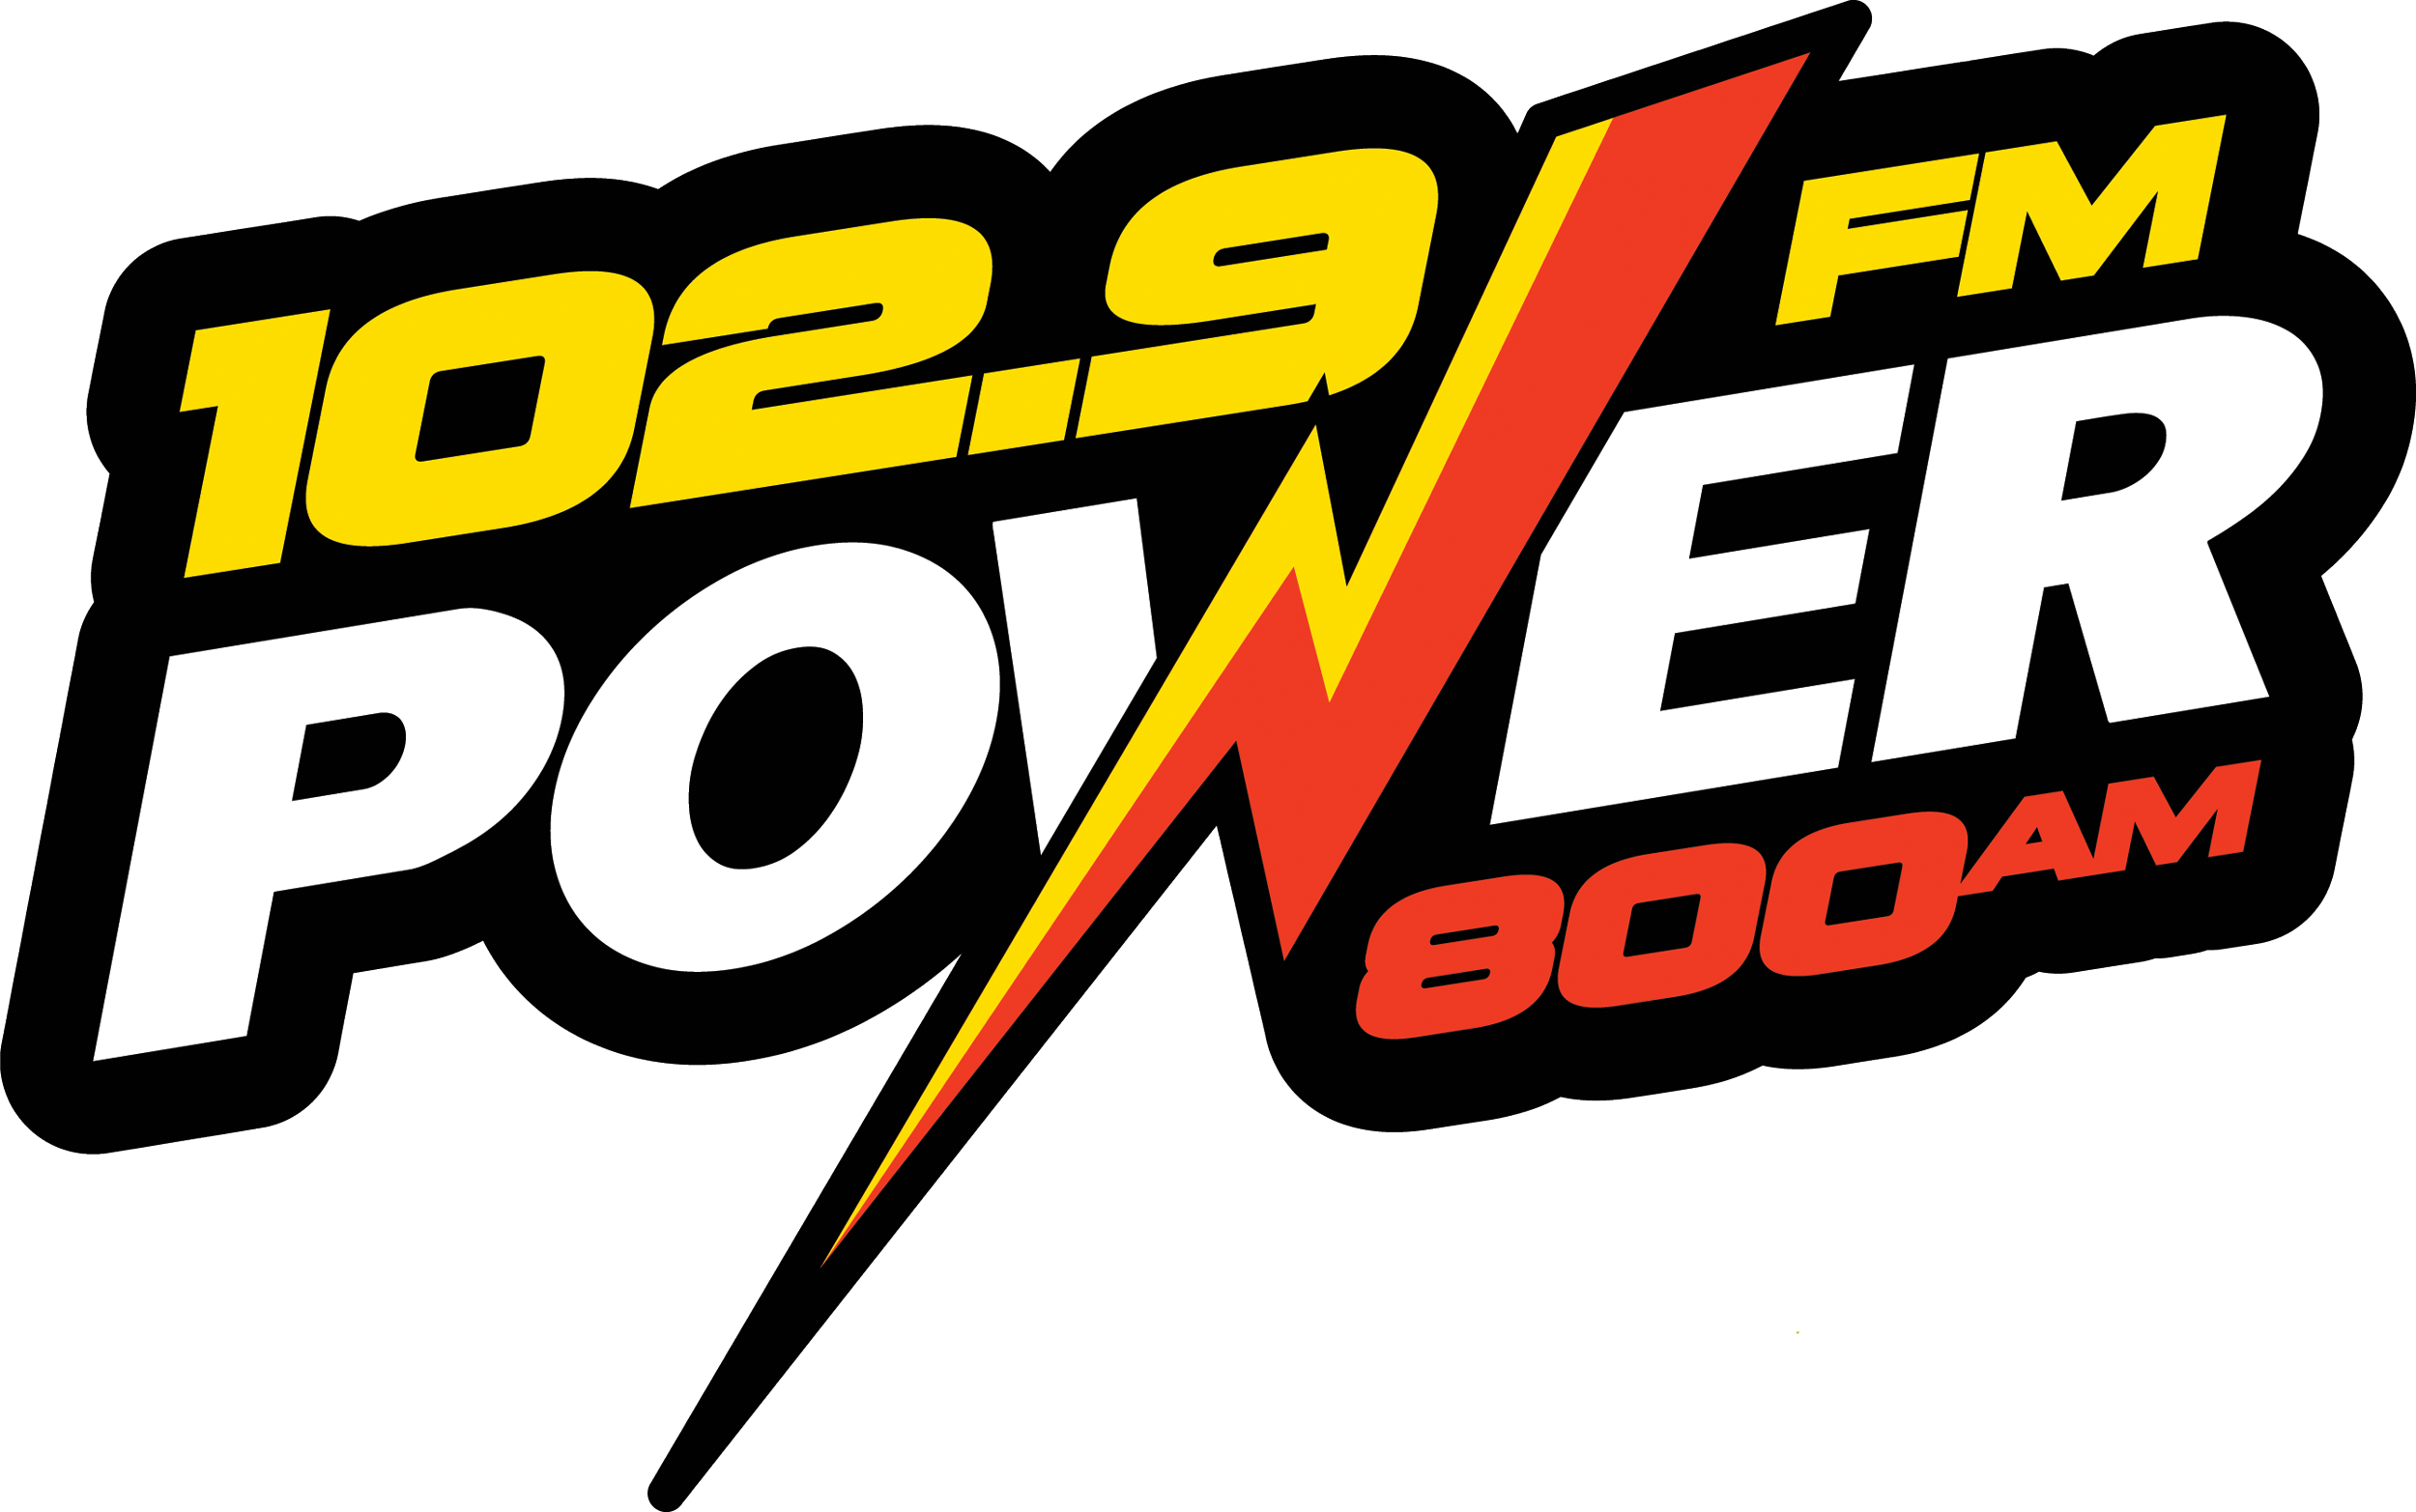 power800am.com